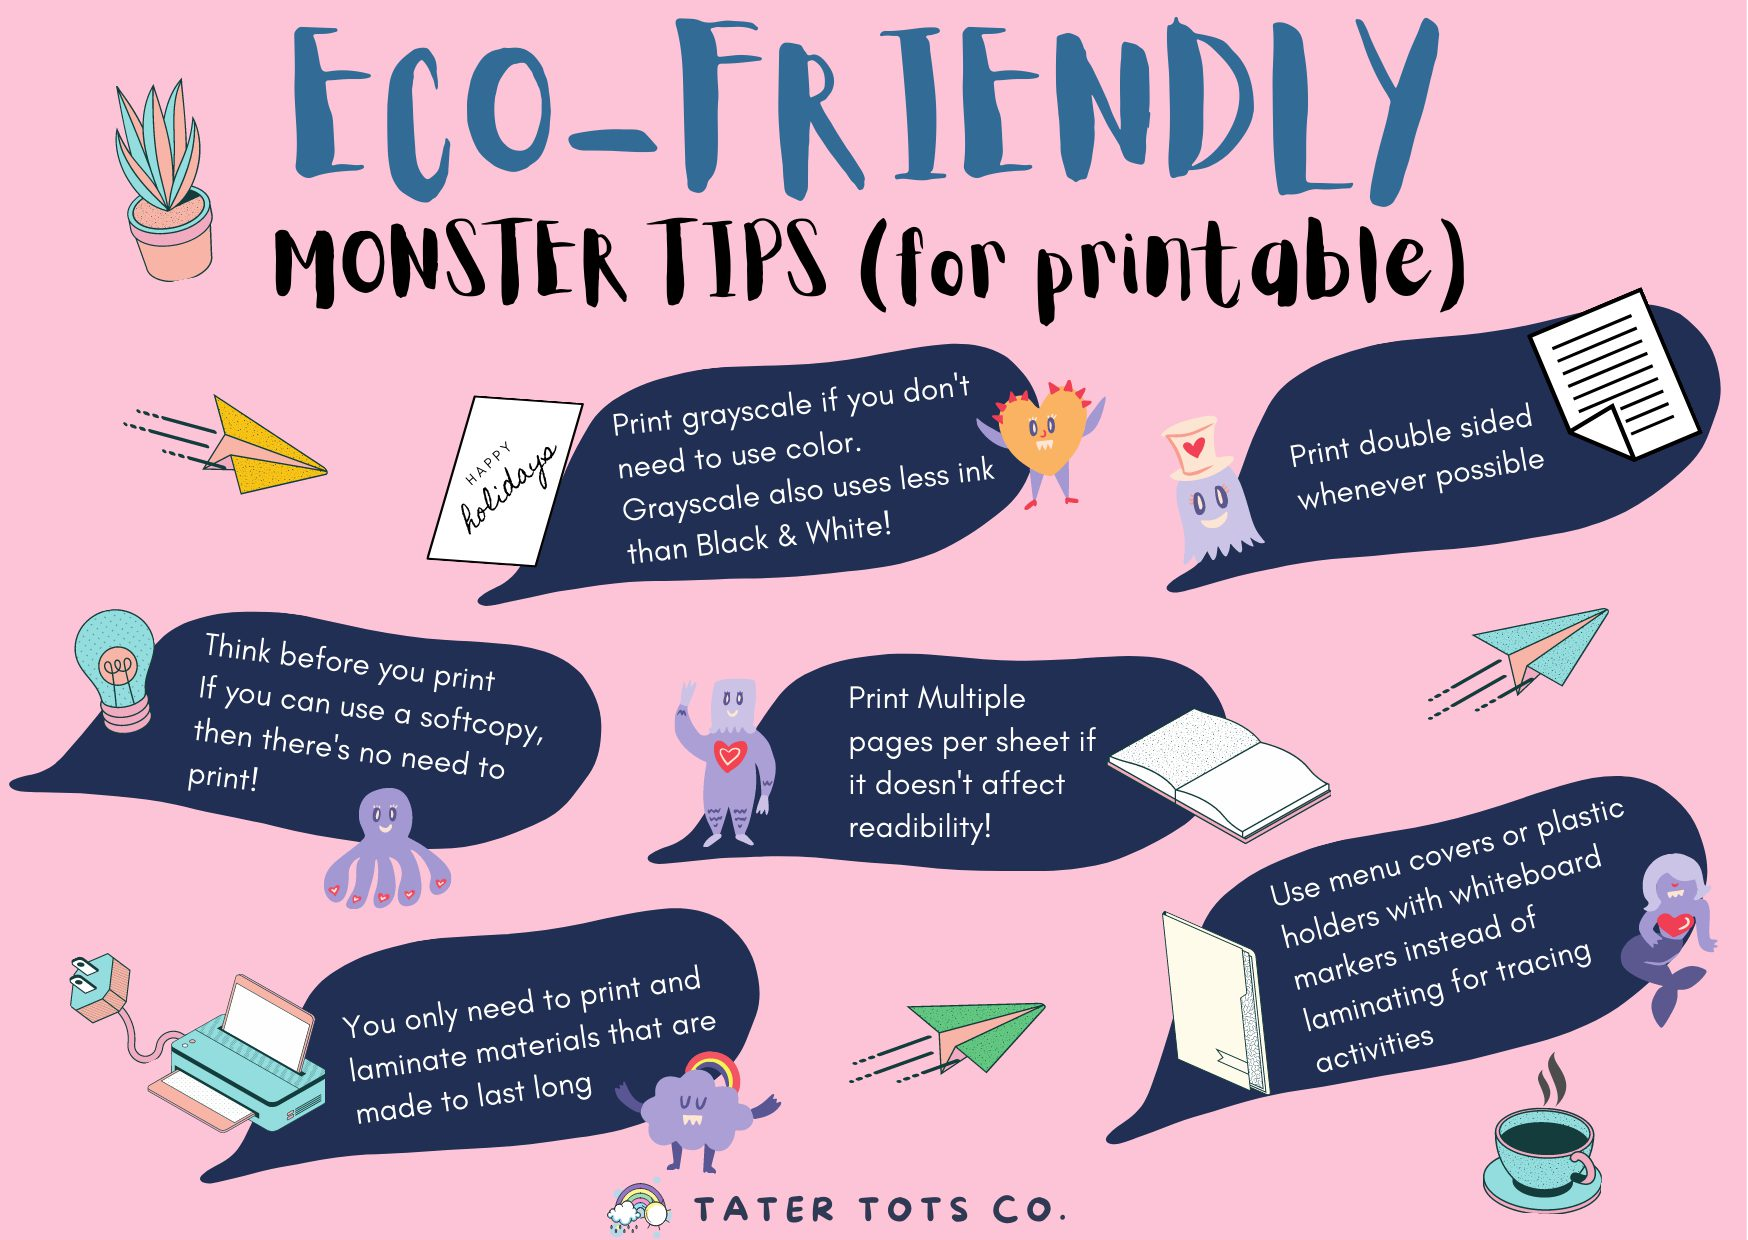 Before you hit the print button when printing learning materials, read the Eco Friendly Saving monster tips! Conserve printer ink, save money and paper while you enjoy using online resources.  #environmentallyfriendly #freeprintable